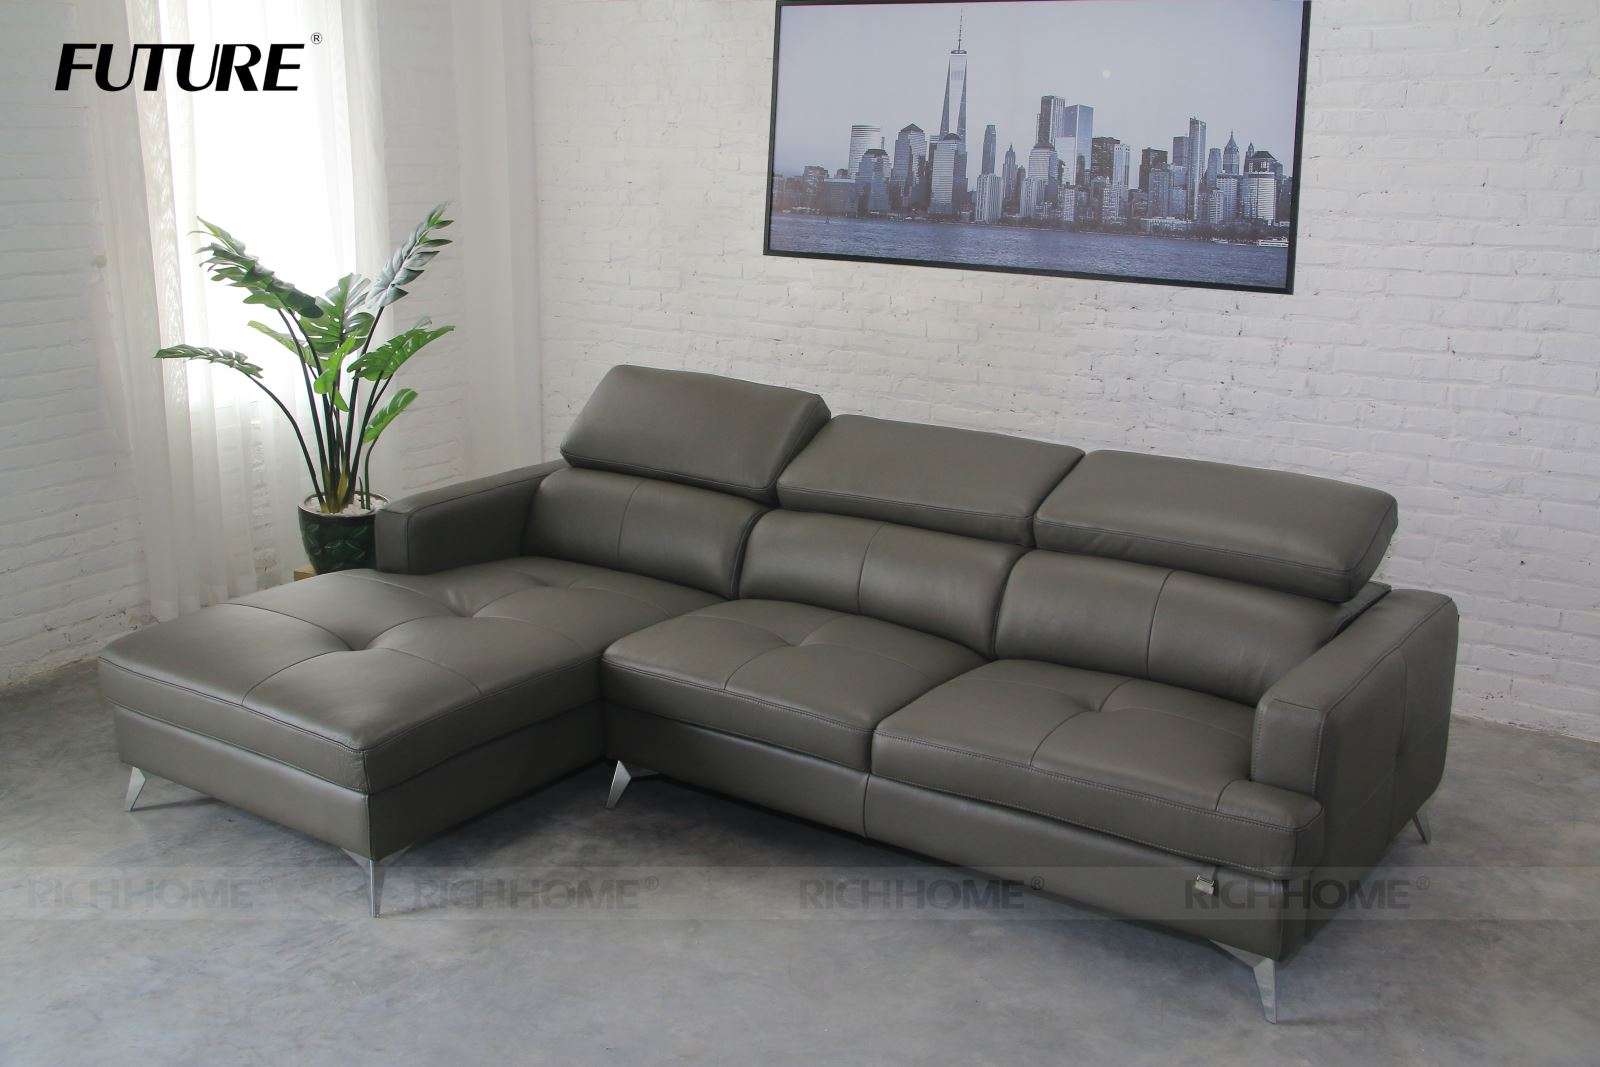 SOFA DA BÒ - FUTURE MODEL 7030 (3L)